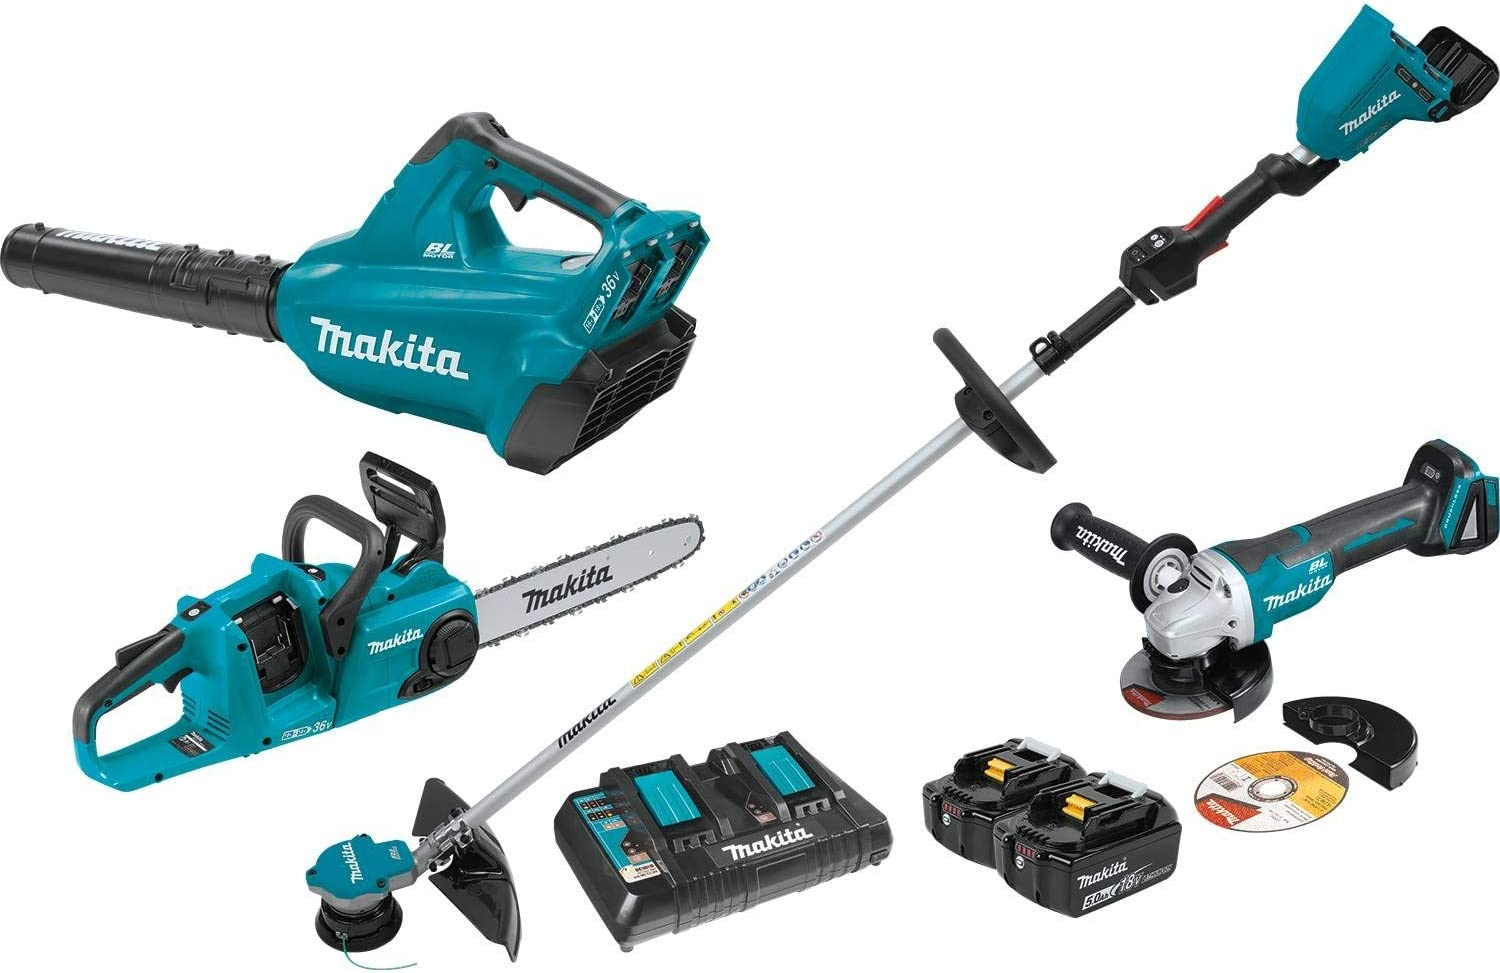 Makita XT331PTX 18V X2 36V LXT Lithium-Ion Brushless Cordless 3-Pc. Combo Kit 5.0Ah and Brushless Angle Grinder